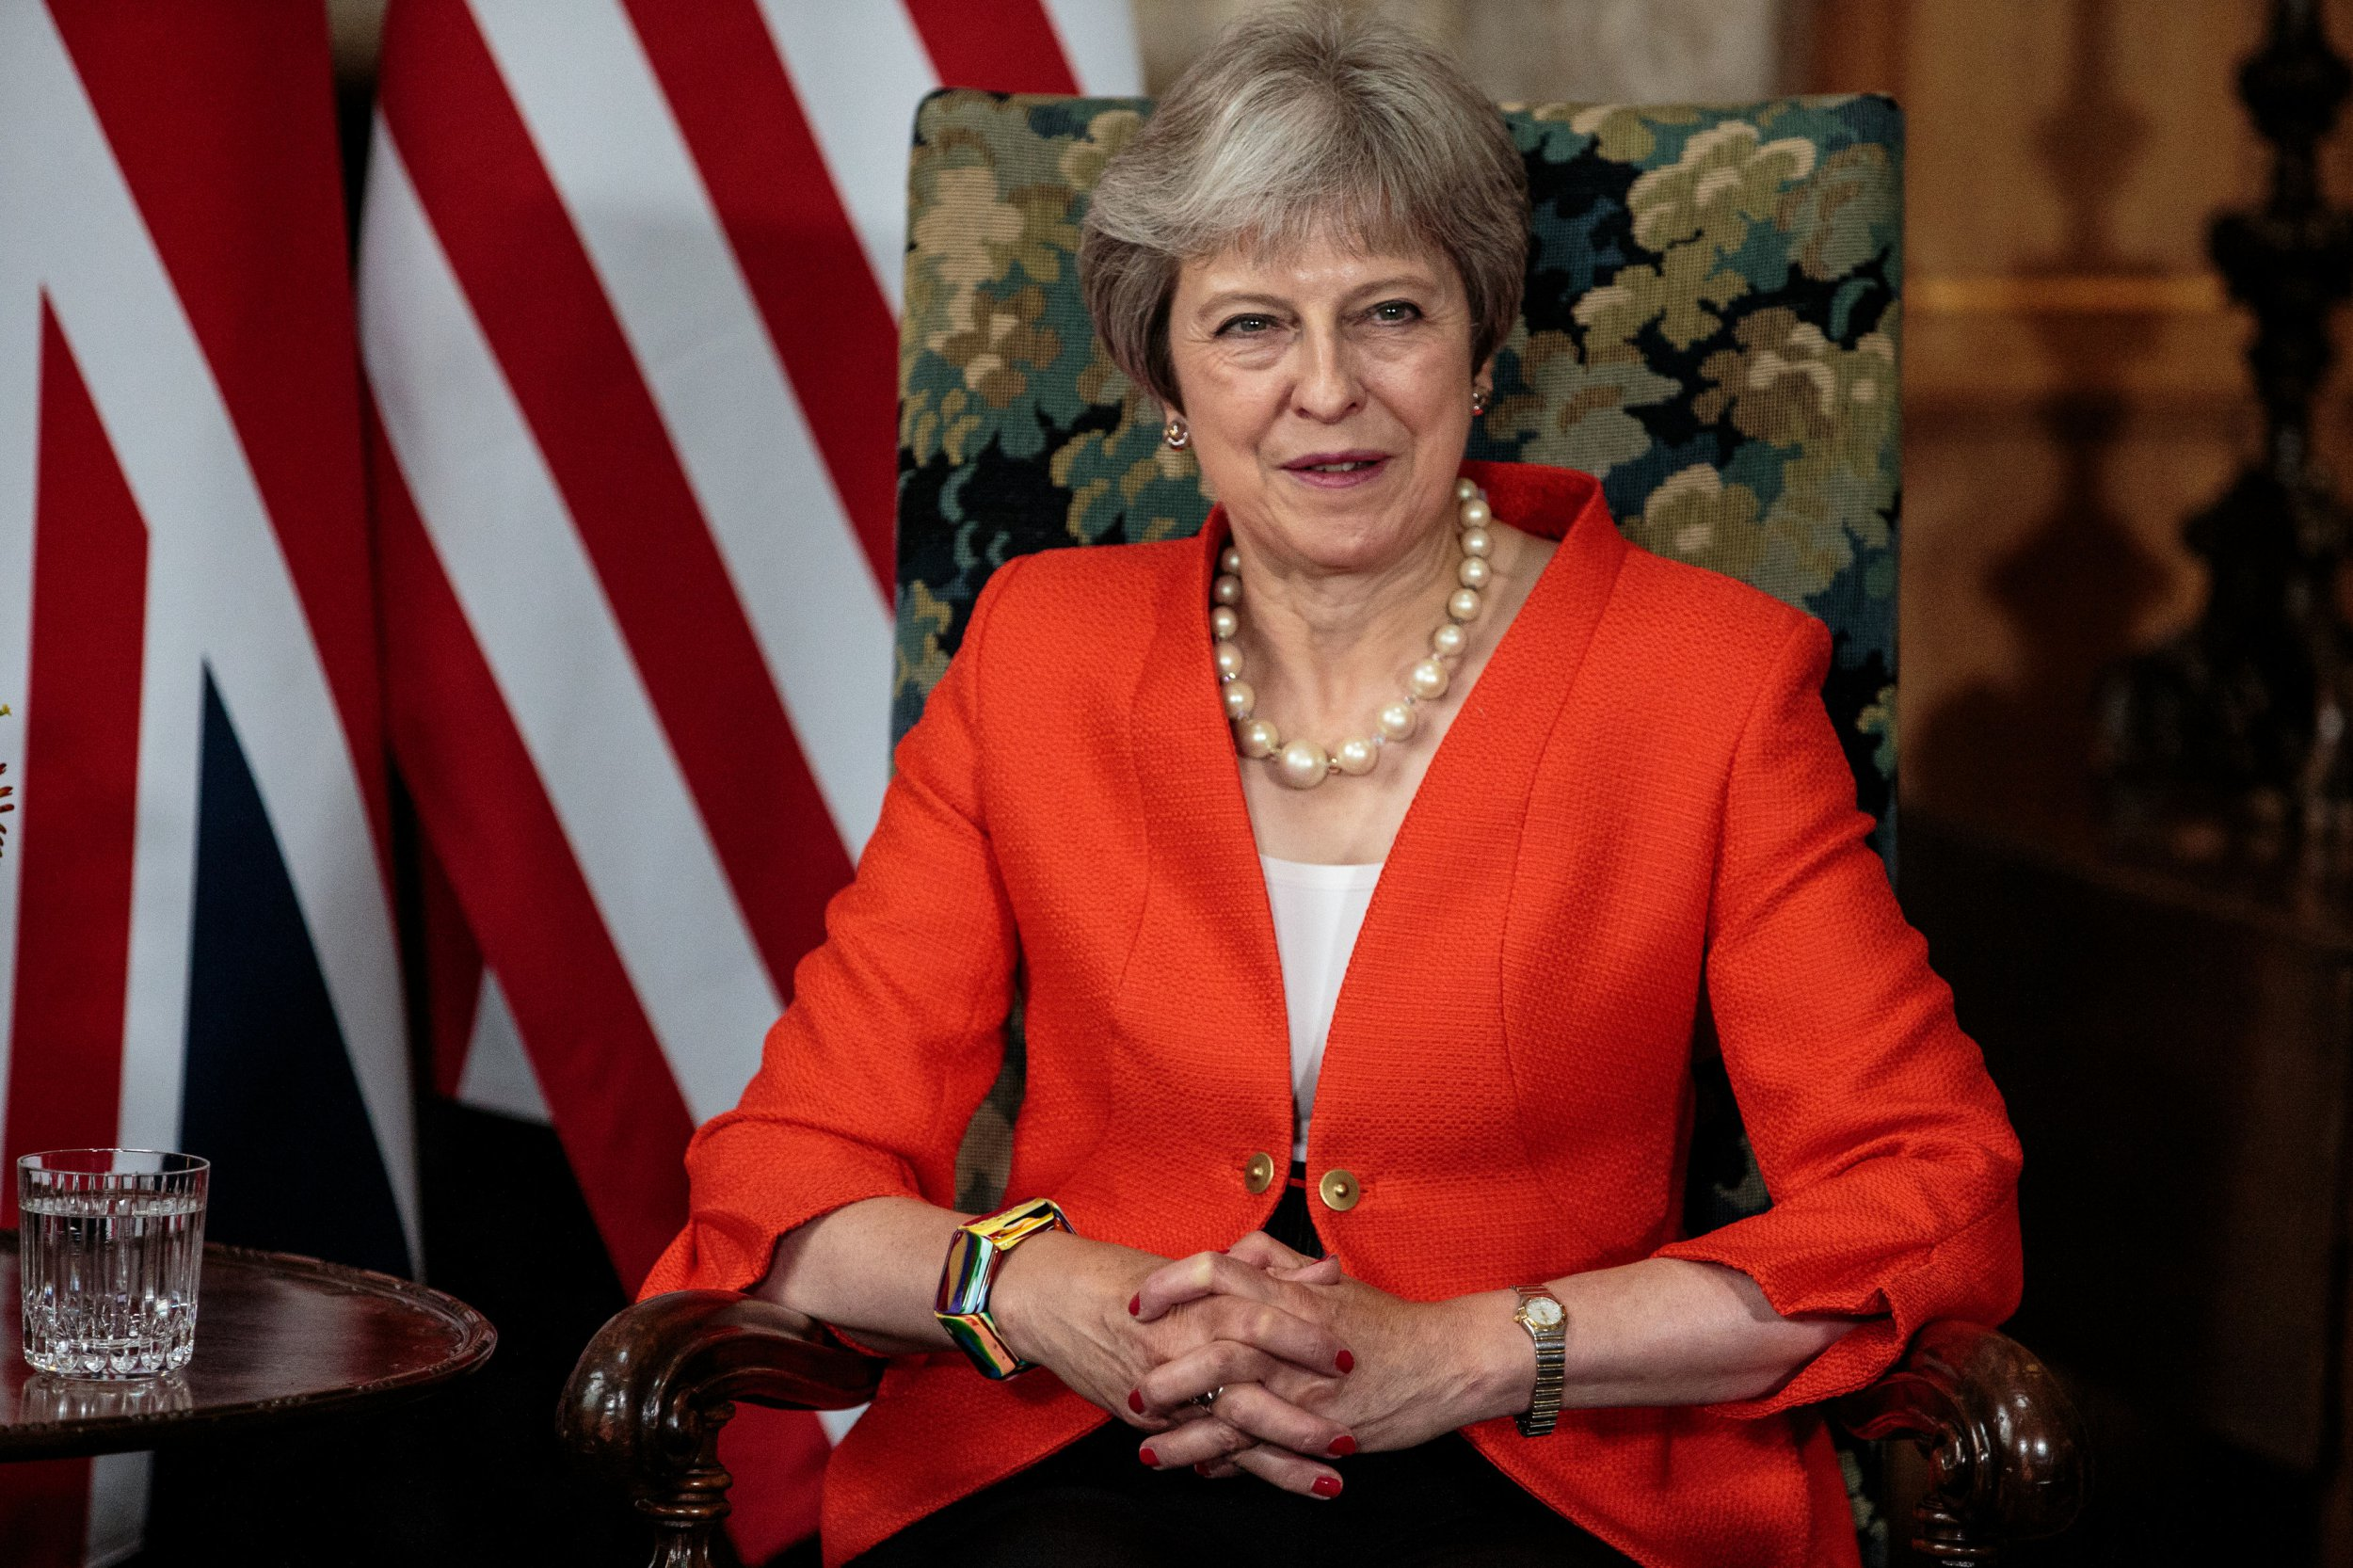 Prime Minister Theresa May during a meeting with US President Donald Trump at Chequers, her country residence in Buckinghamshire. PRESS ASSOCIATION Photo. Picture date: Friday July 13, 2018. See PA story POLITICS Trump. Photo credit should read: Jack Taylor/PA Wire